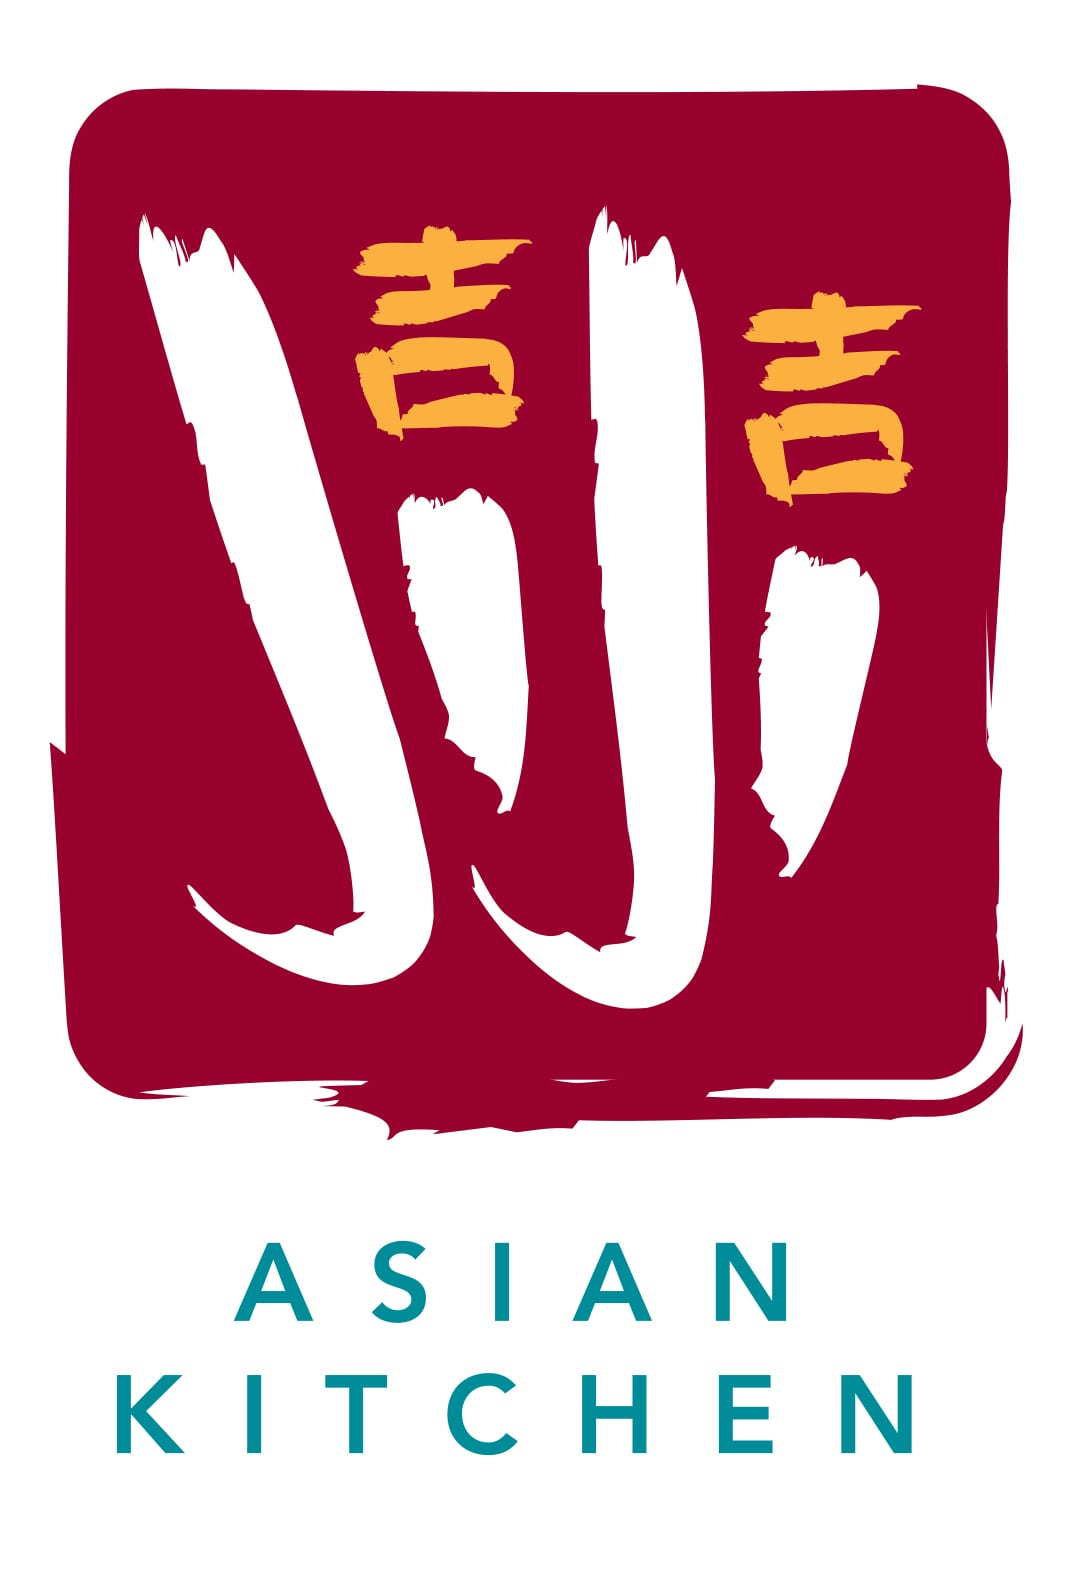 Asian Kitchen logo, Carnival Cruise Line branding created by Canyon Creative